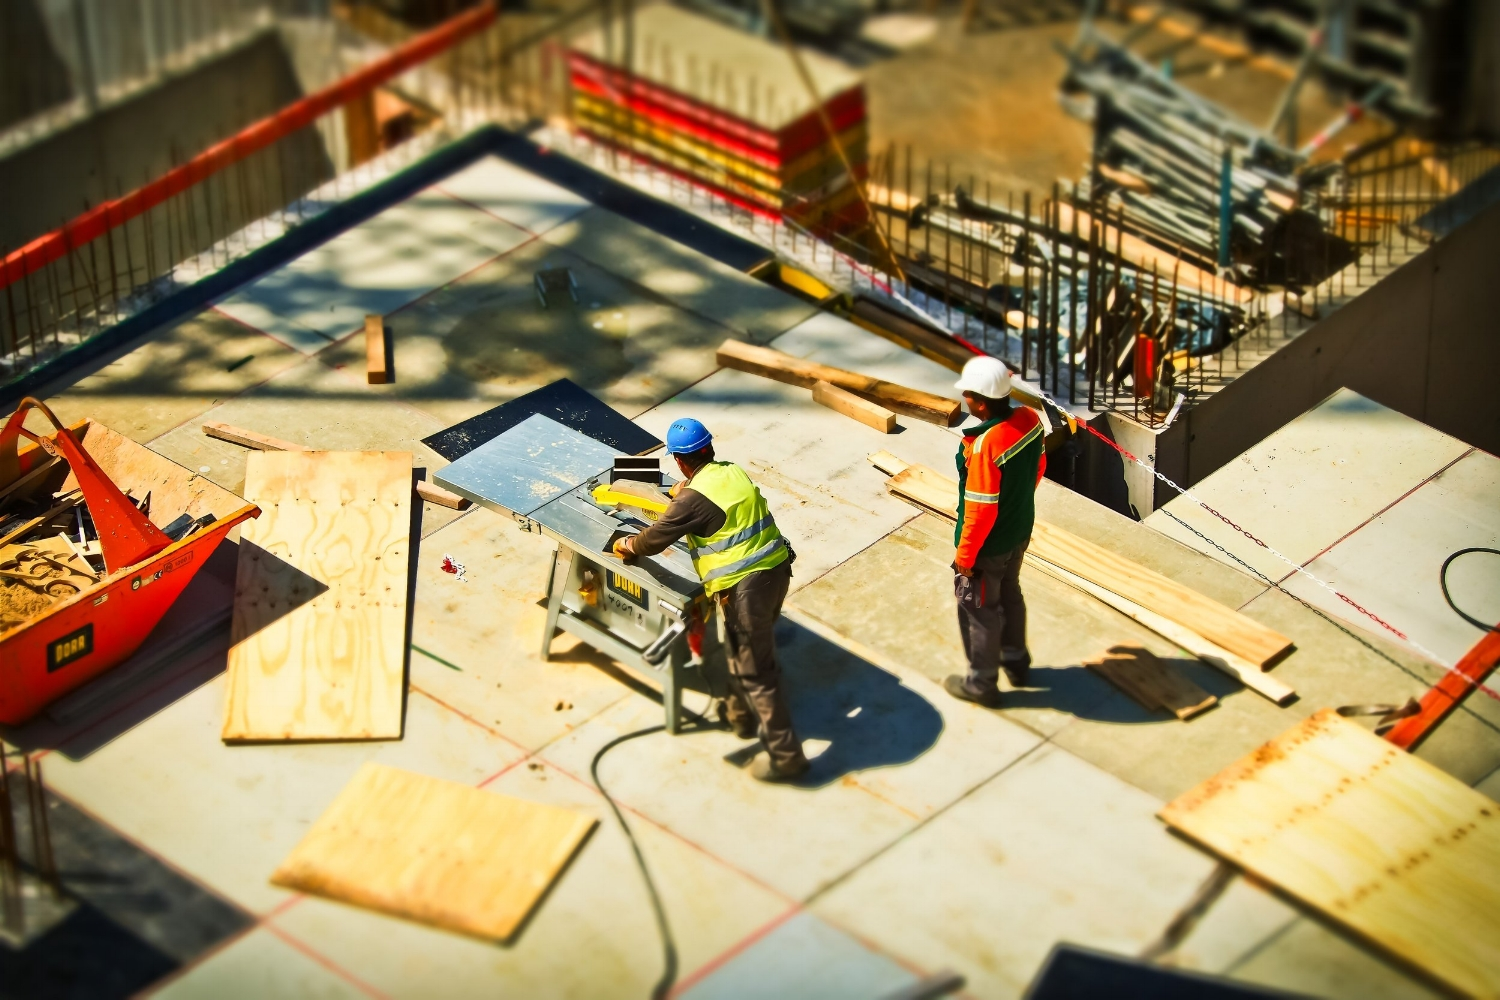 construction-construction-workers-create-159306.jpg